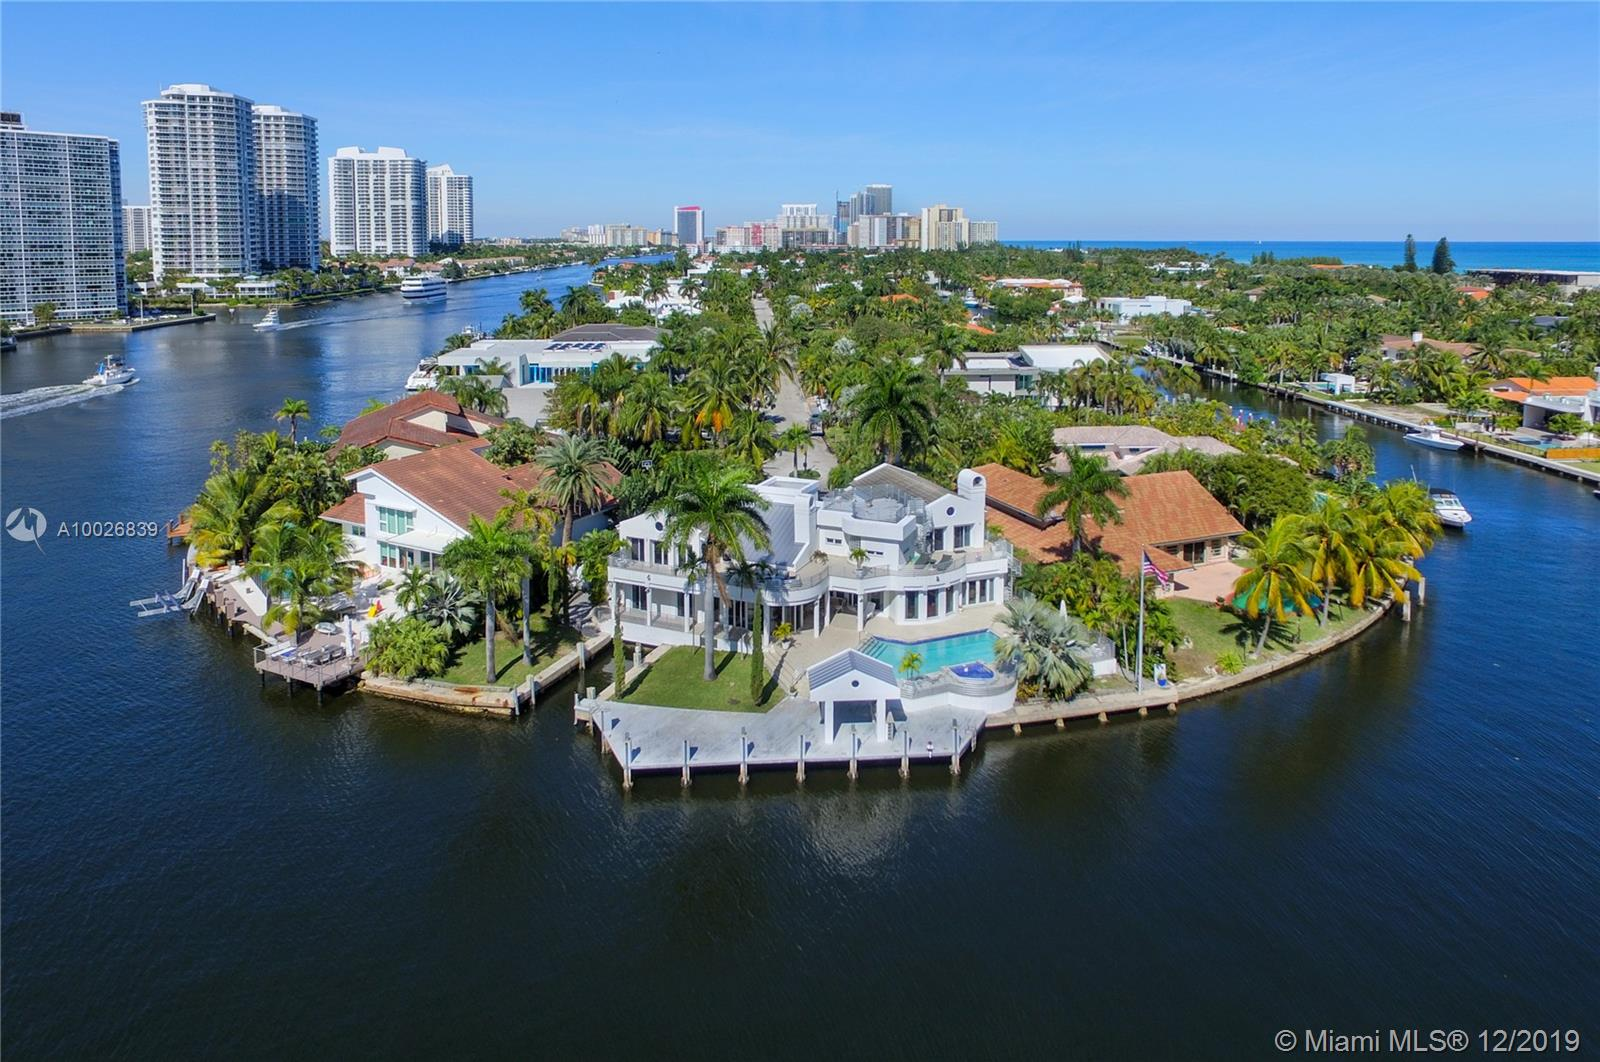 349 Center Island Dr. Golden Beach, FL 33160